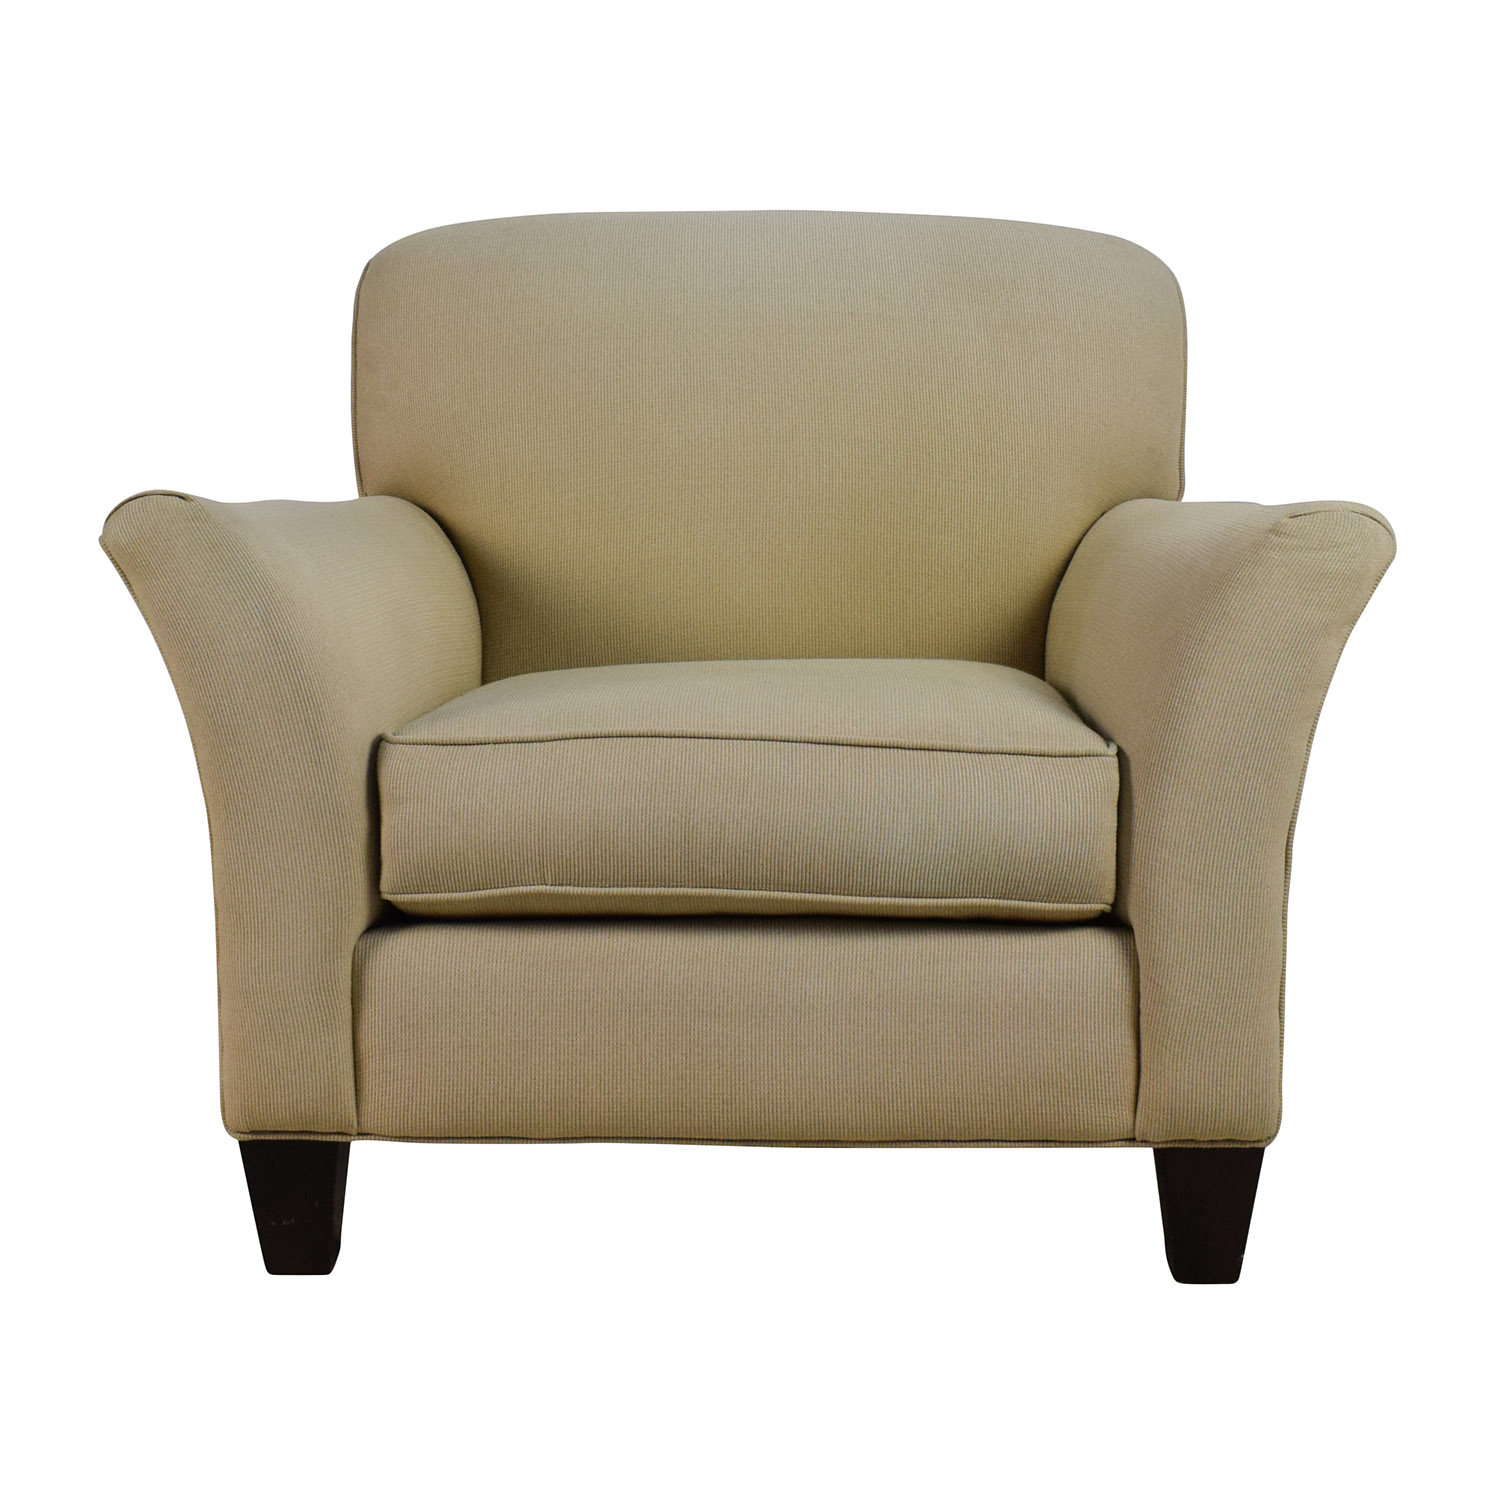 Prime 90 Off Rowe Furniture Rowe Furniture Capri Beige Sofa Chair Chairs Caraccident5 Cool Chair Designs And Ideas Caraccident5Info